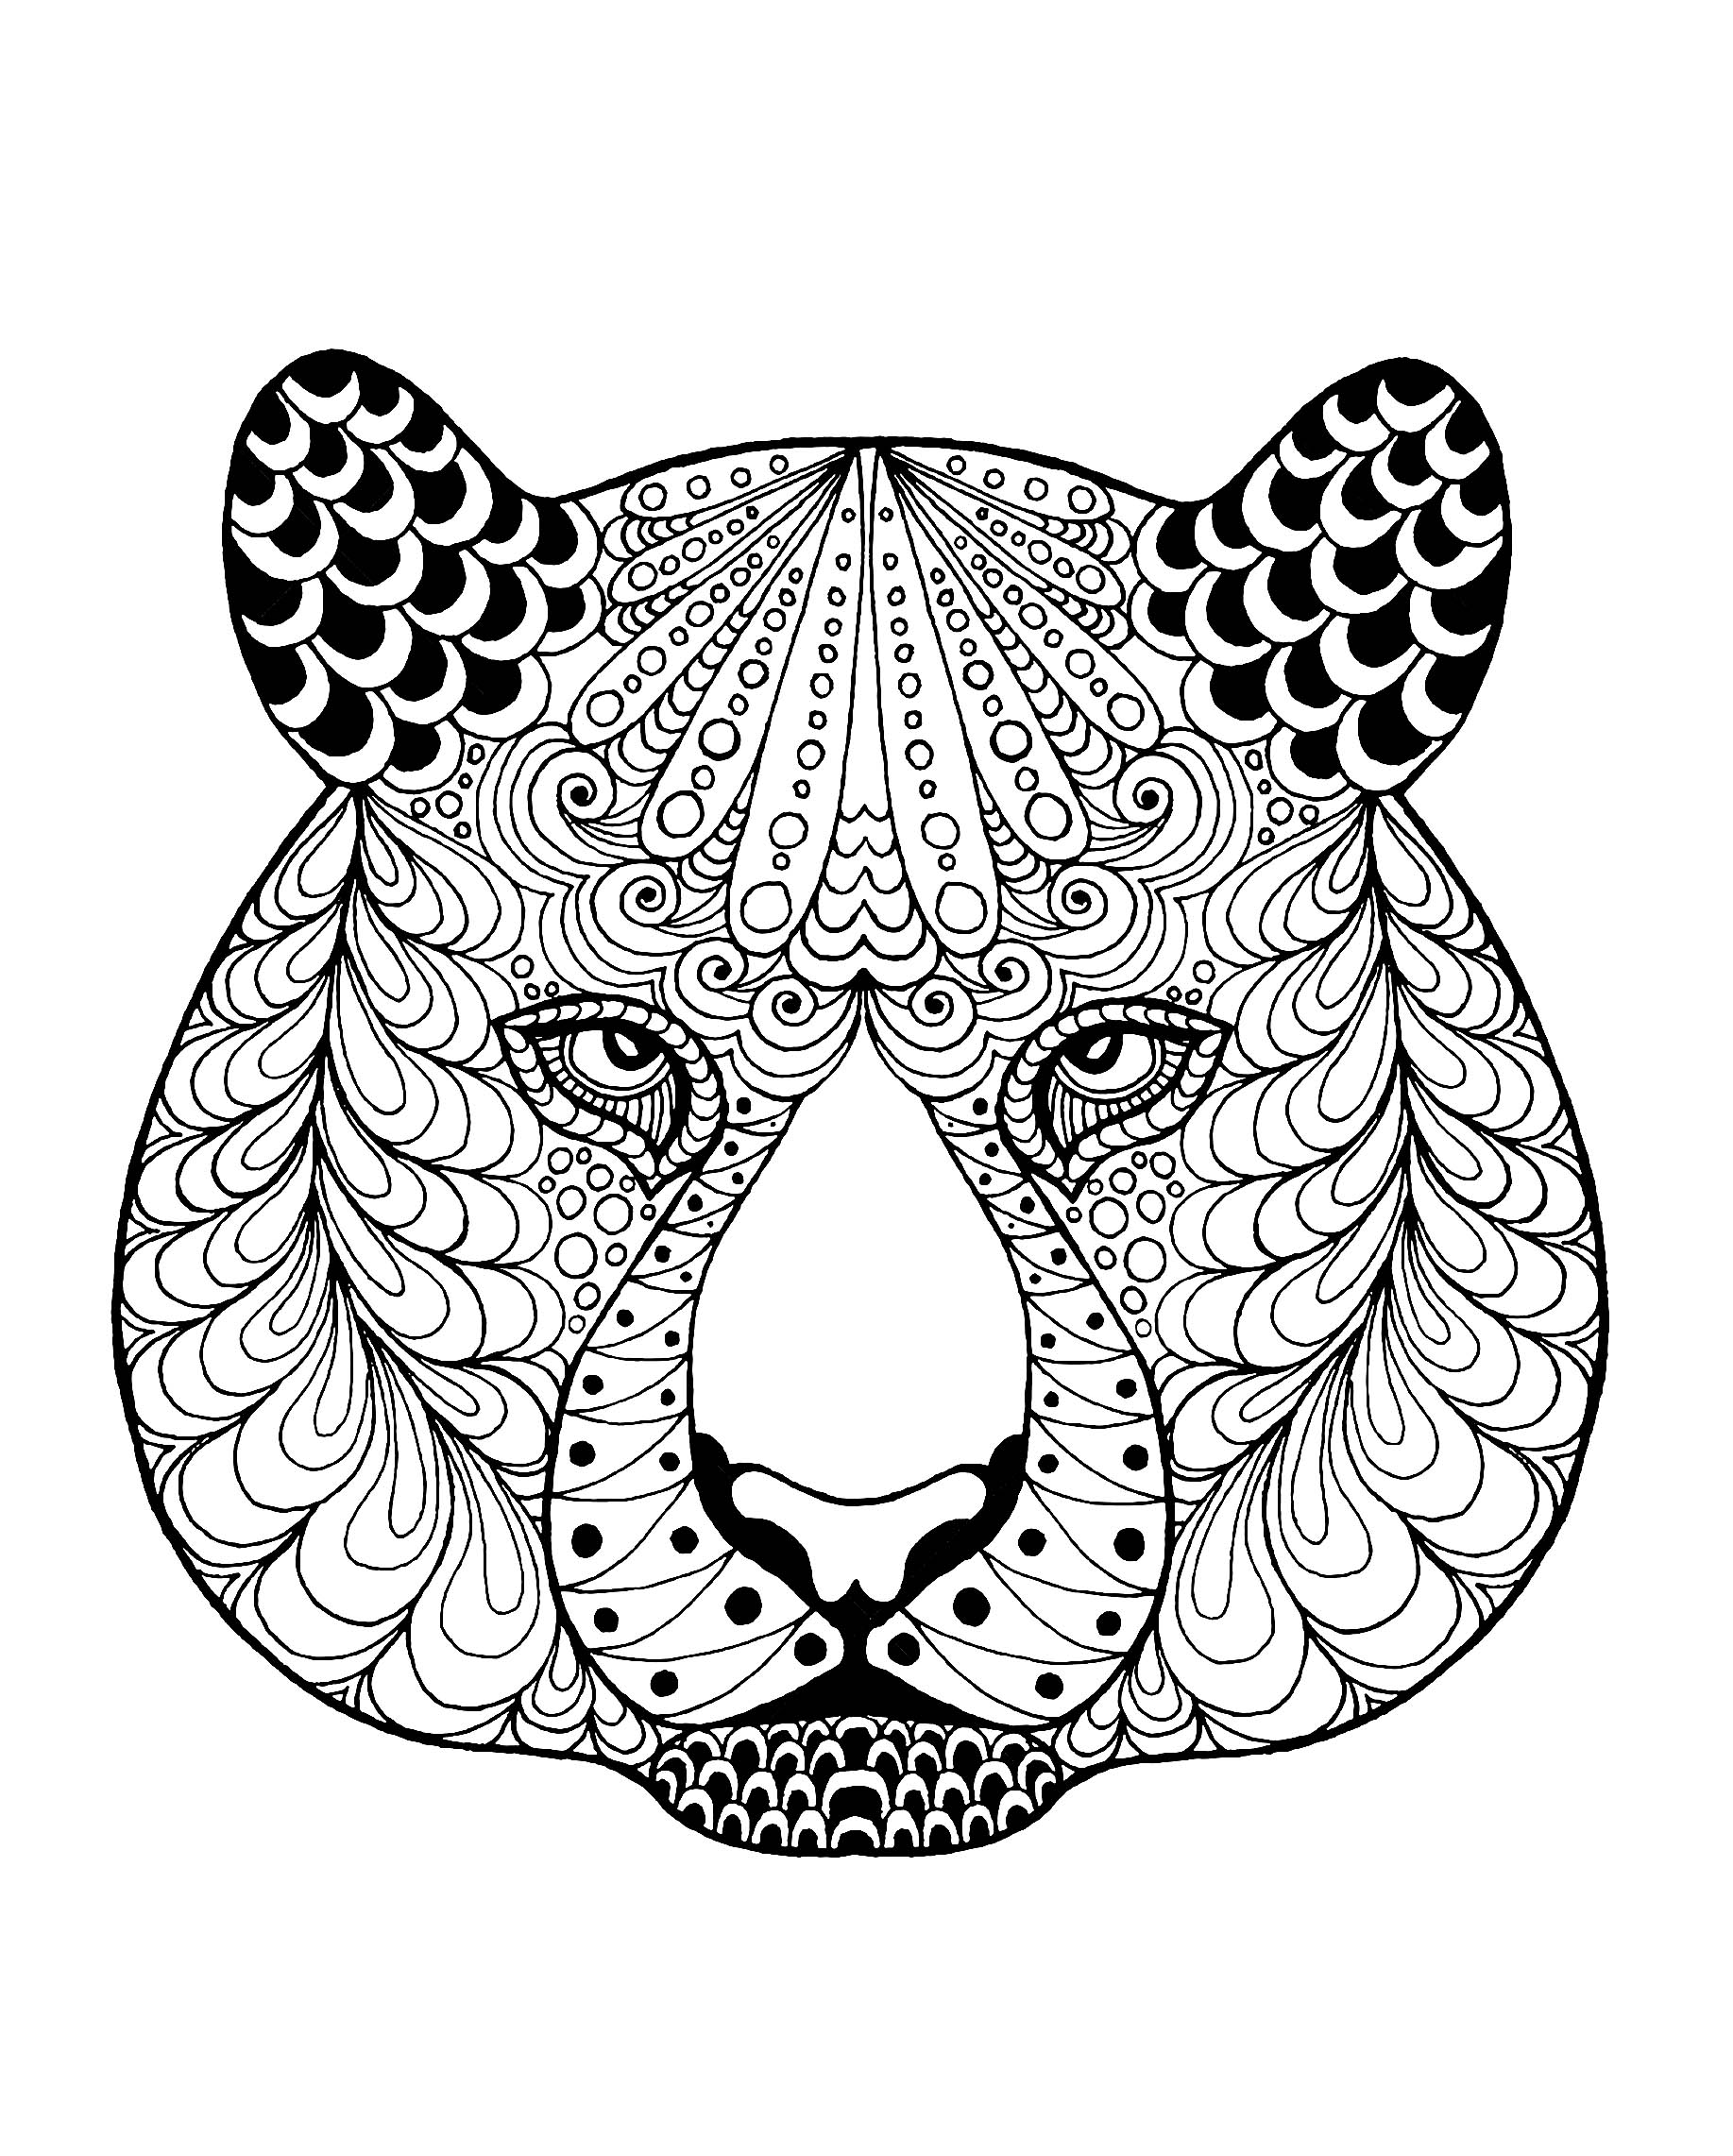 Tiger head with patterns - Tigers Adult Coloring Pages